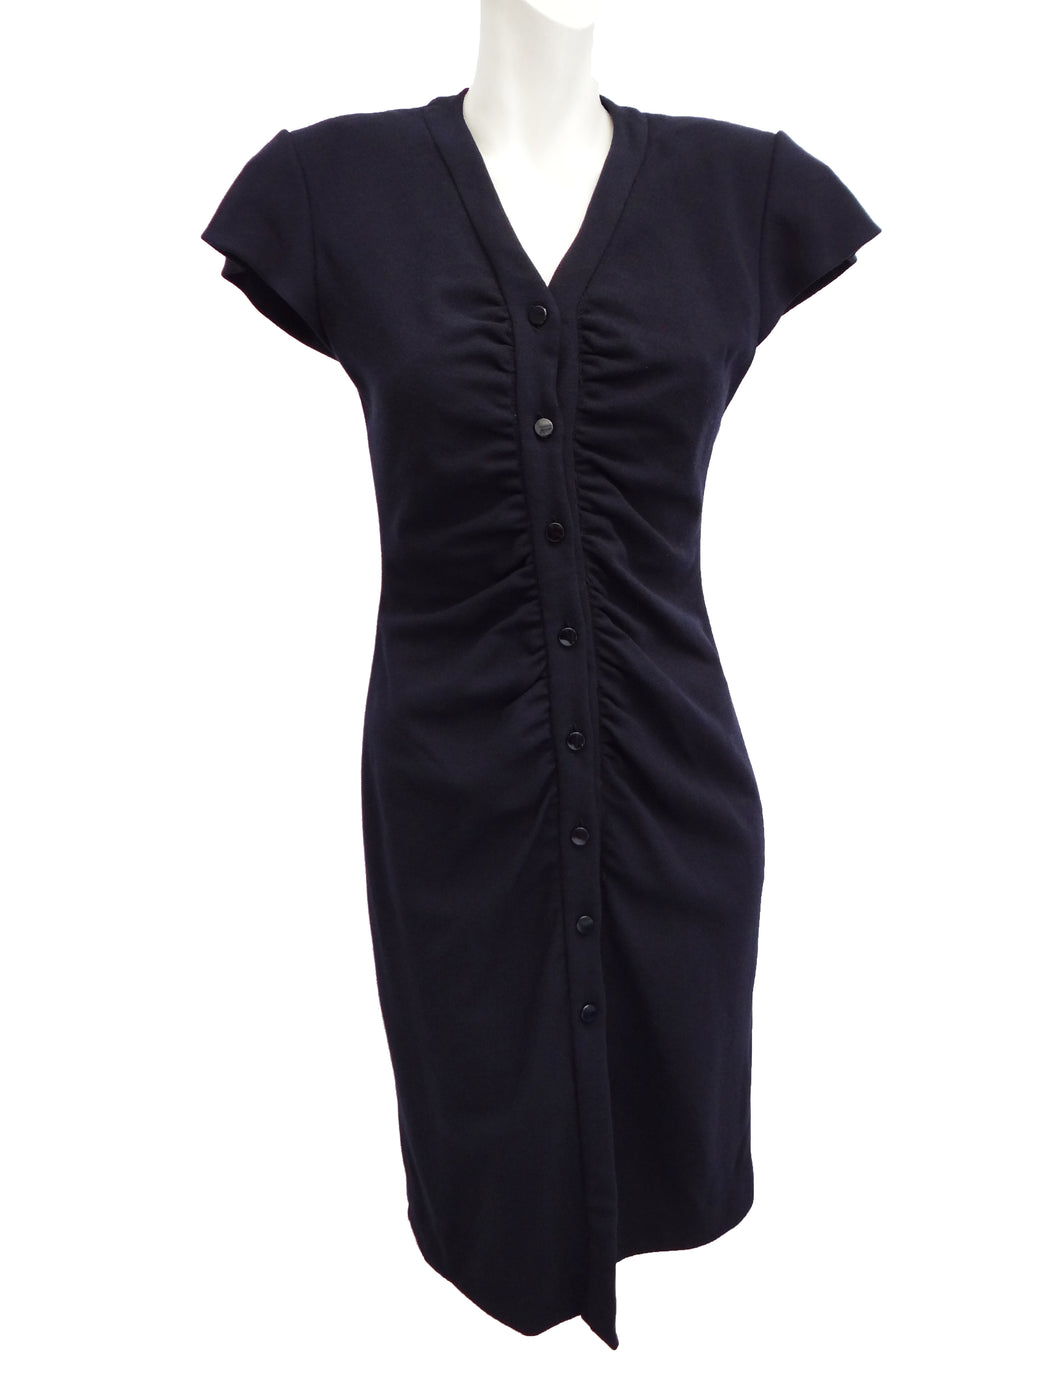 Vintage Valentino Boutique Ruched Buttoned Dress in Navy Wool Crepe, UK10